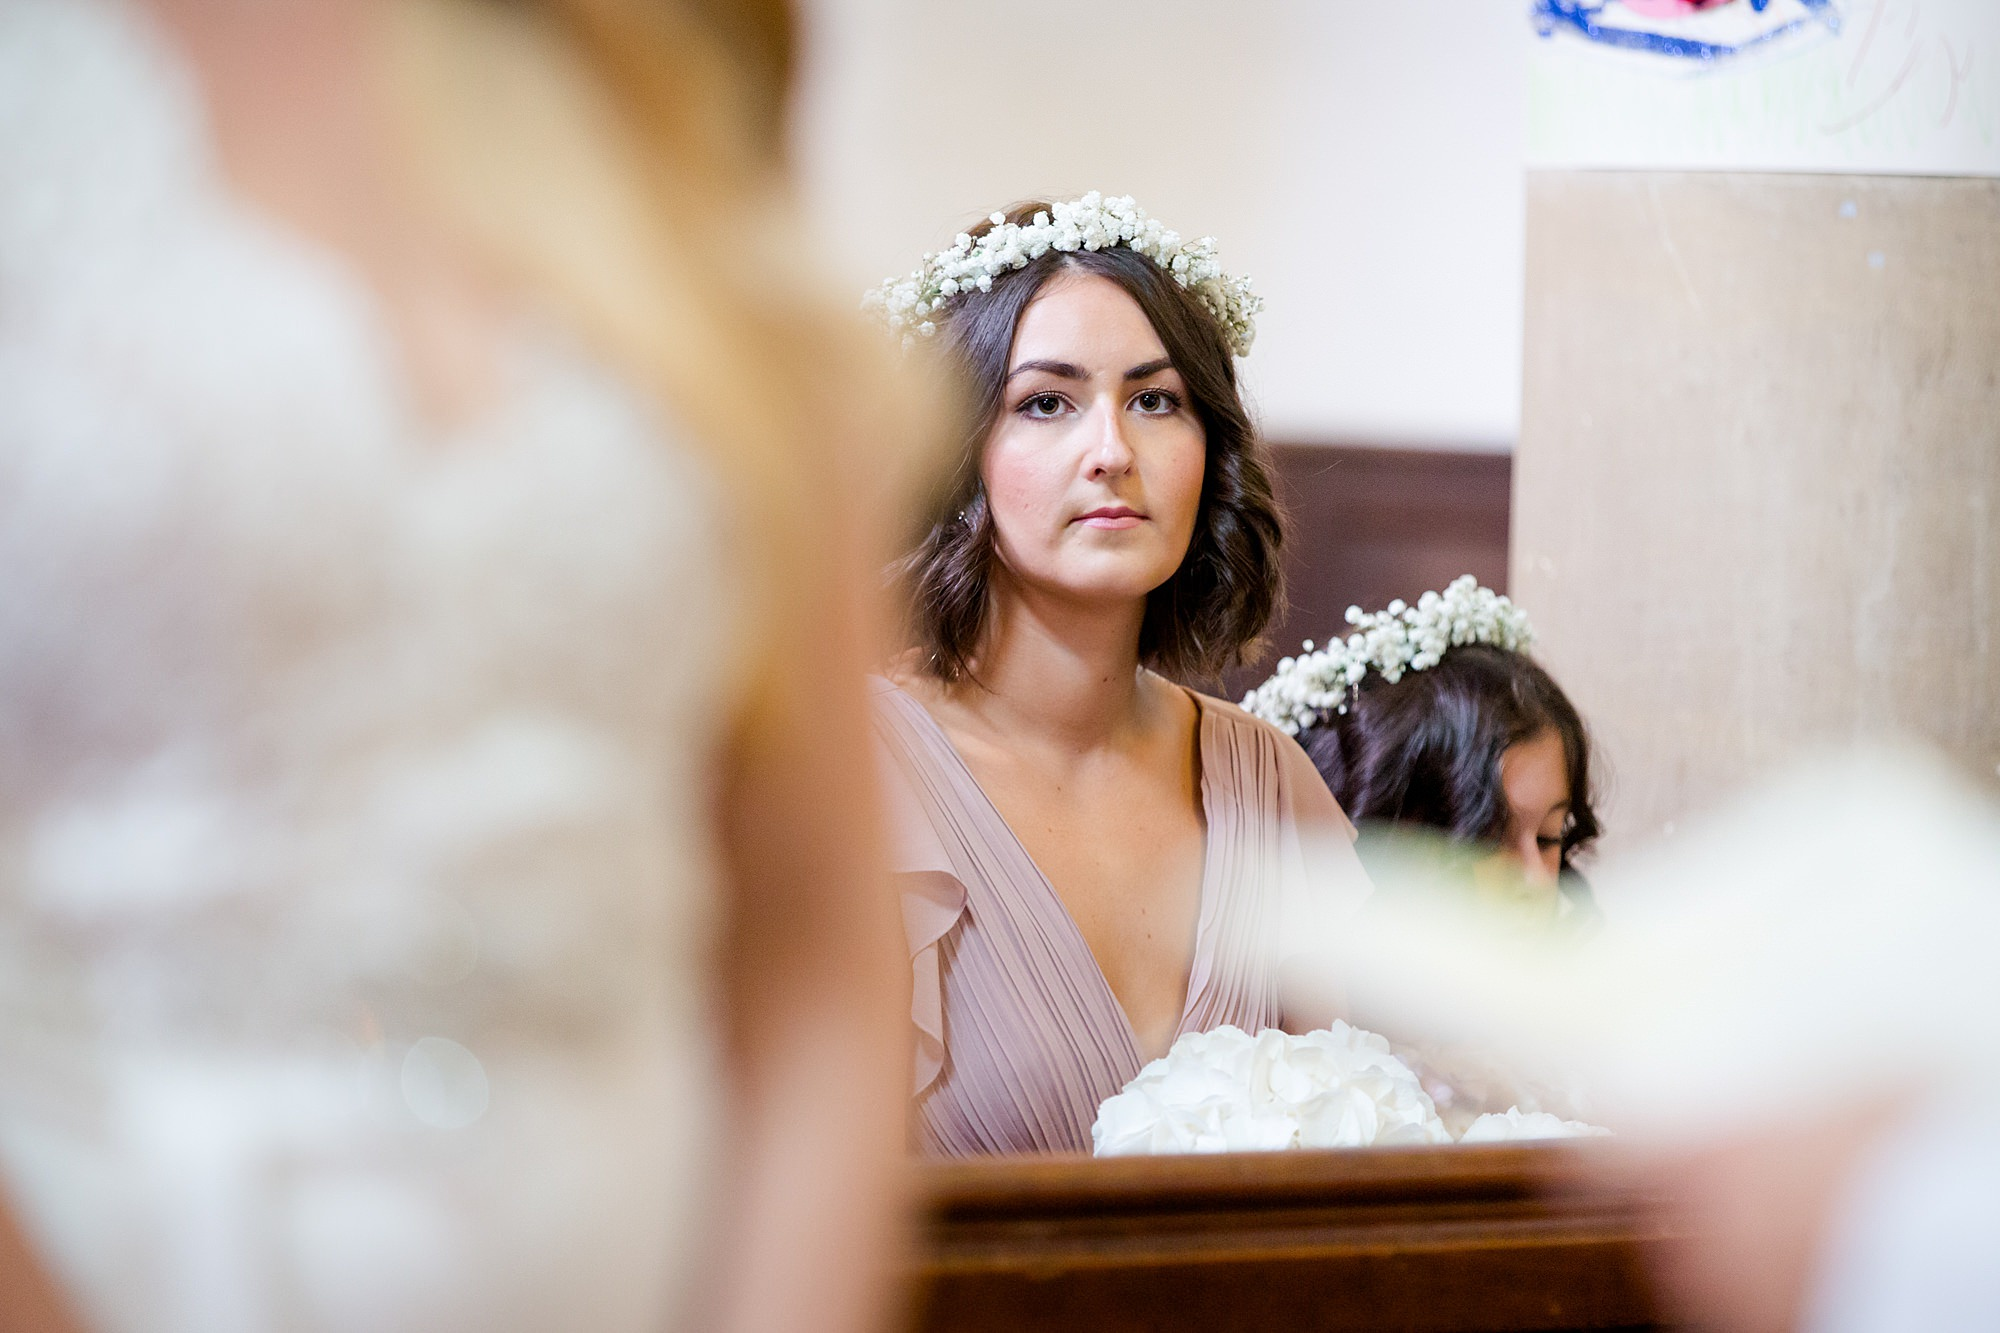 Writtle university college wedding bridesmaid watches ceremony